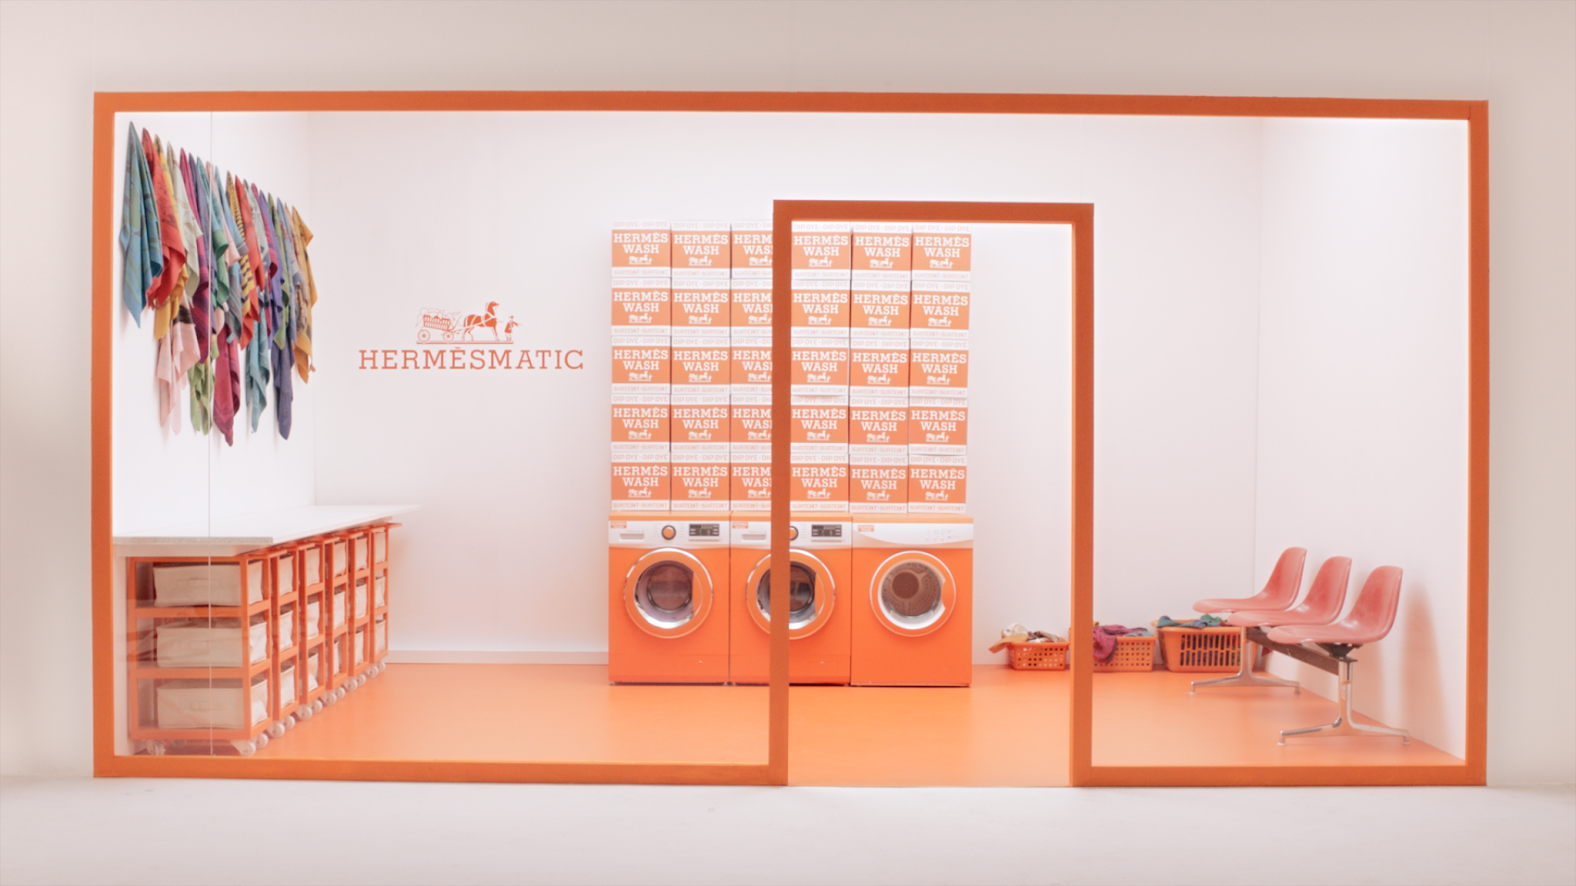 Hermès sets up a laundromat-style scarf pop-up at Westfield Century City; Max Mara to bring 'Wrapped in Luxury' exhibit to Beverly Hills